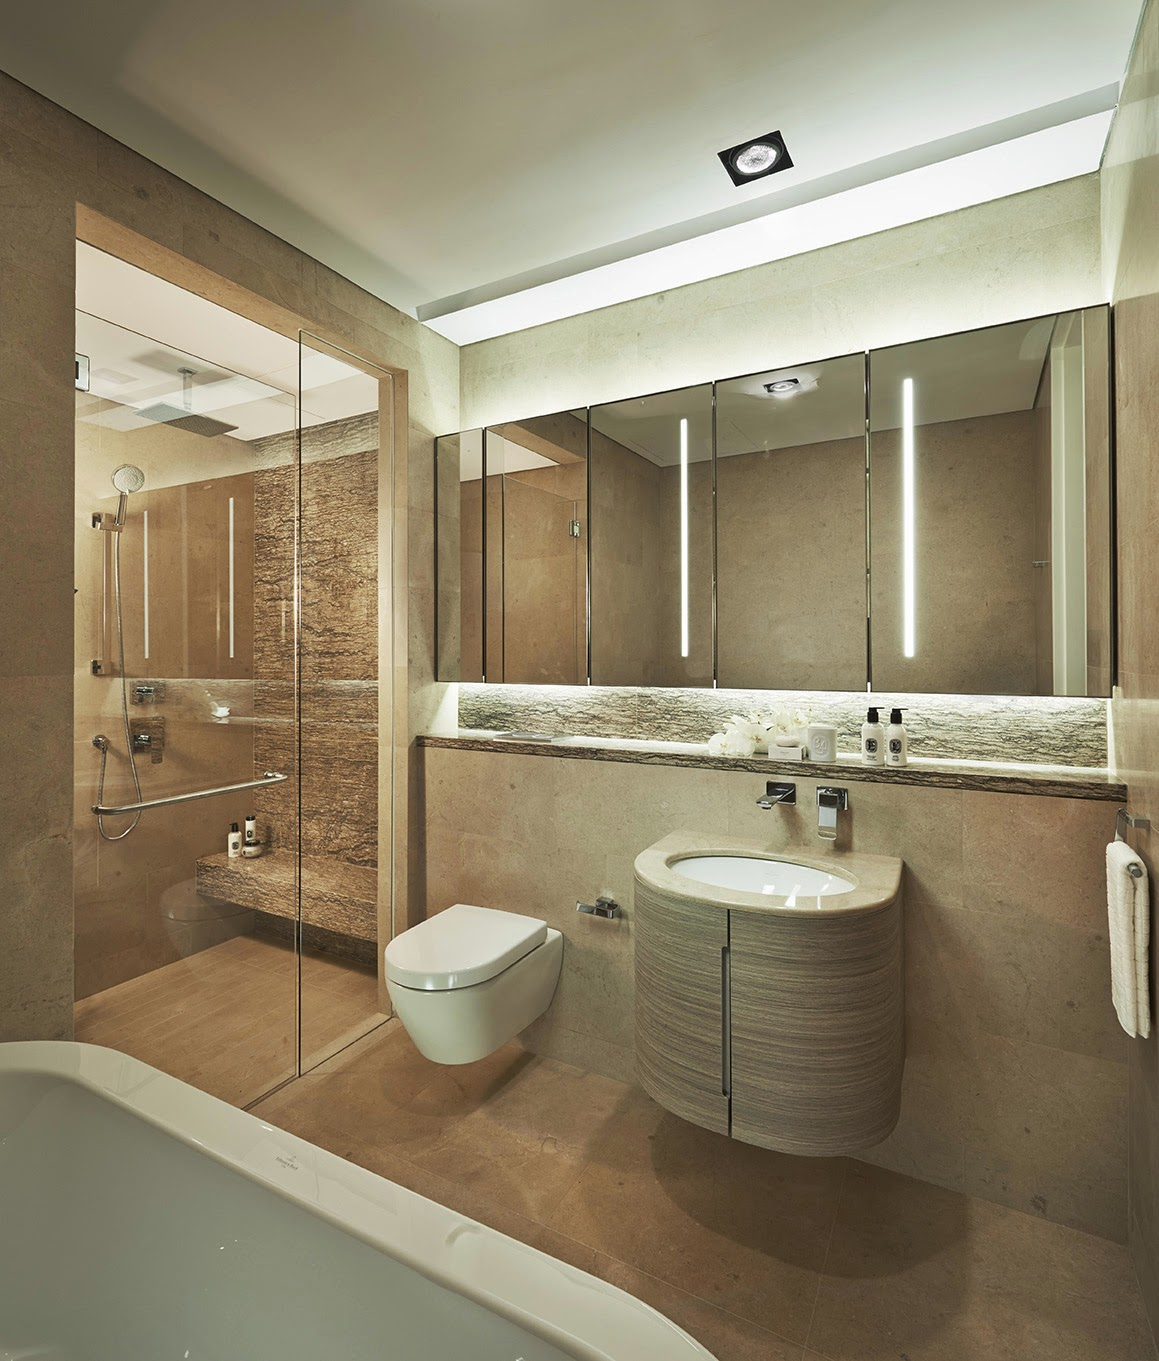 duo-residences-toilet.jpg